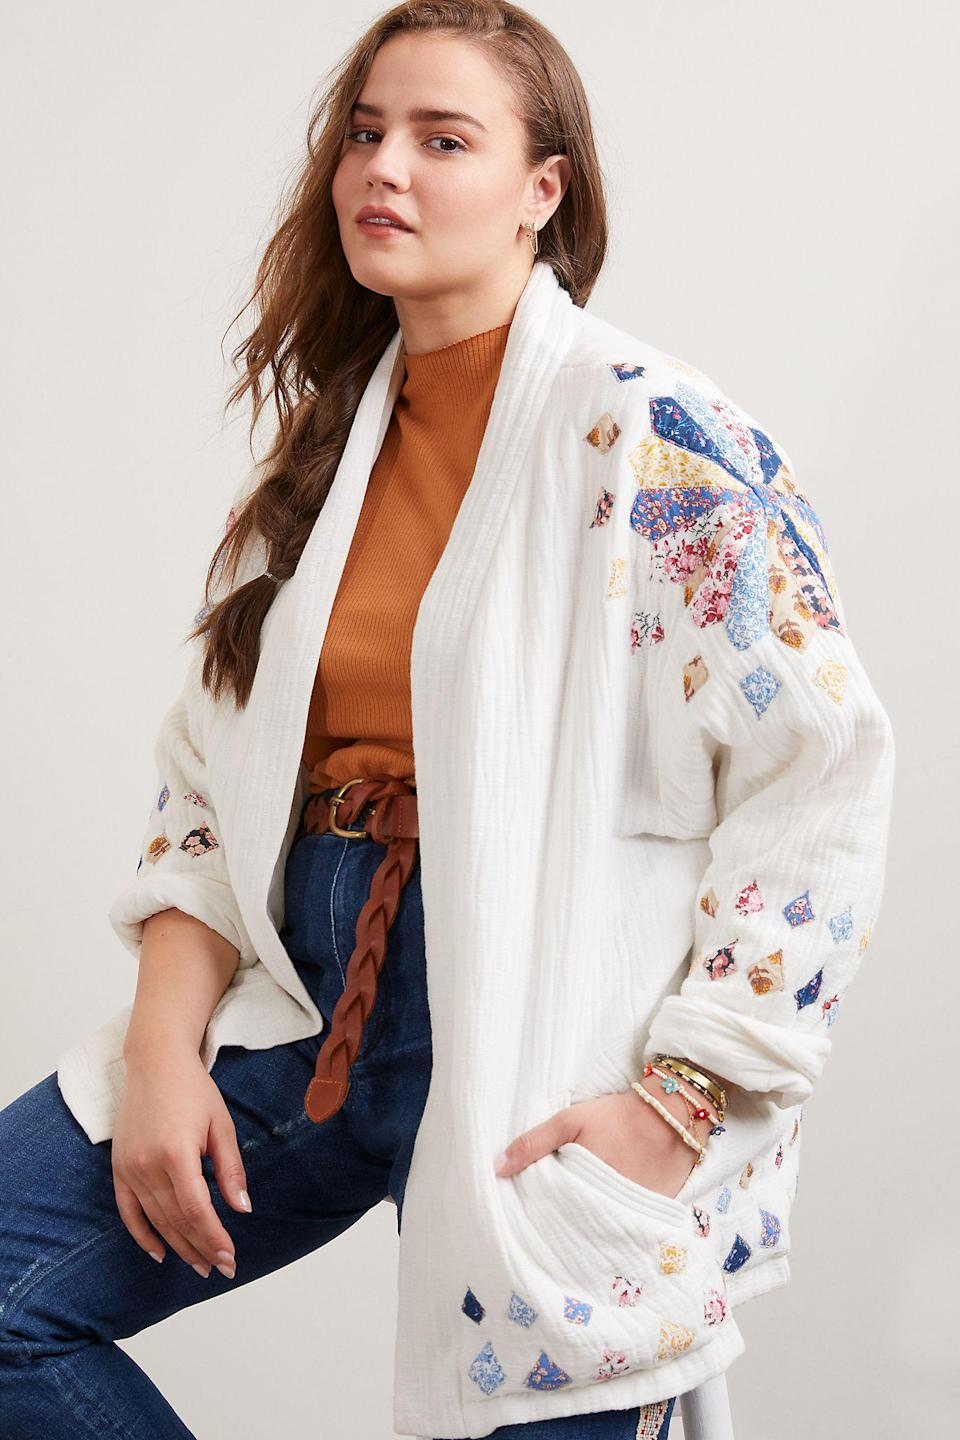 """<h2>Anthropologie</h2><br><strong>Dates: </strong>Limited time<br><strong>Sale:</strong> Extra 25% off sale items<br><strong>Code:</strong> None<br><br><em>Shop <strong><a href=""""https://www.anthropologie.com/freshly-cut-sale"""" rel=""""nofollow noopener"""" target=""""_blank"""" data-ylk=""""slk:Anthropologie"""" class=""""link rapid-noclick-resp"""">Anthropologie</a></strong></em><br><br><strong>Anthropologie</strong> Quilted Patchwork Jacket, $, available at <a href=""""https://go.skimresources.com/?id=30283X879131&url=https%3A%2F%2Fwww.anthropologie.com%2Fshop%2Fquilted-patchwork-jacket%3Fcategory%3Dfreshly-cut-sale-clothes%26color%3D015%26type%3DSTANDARD%26quantity%3D1"""" rel=""""nofollow noopener"""" target=""""_blank"""" data-ylk=""""slk:Anthropologie"""" class=""""link rapid-noclick-resp"""">Anthropologie</a>"""